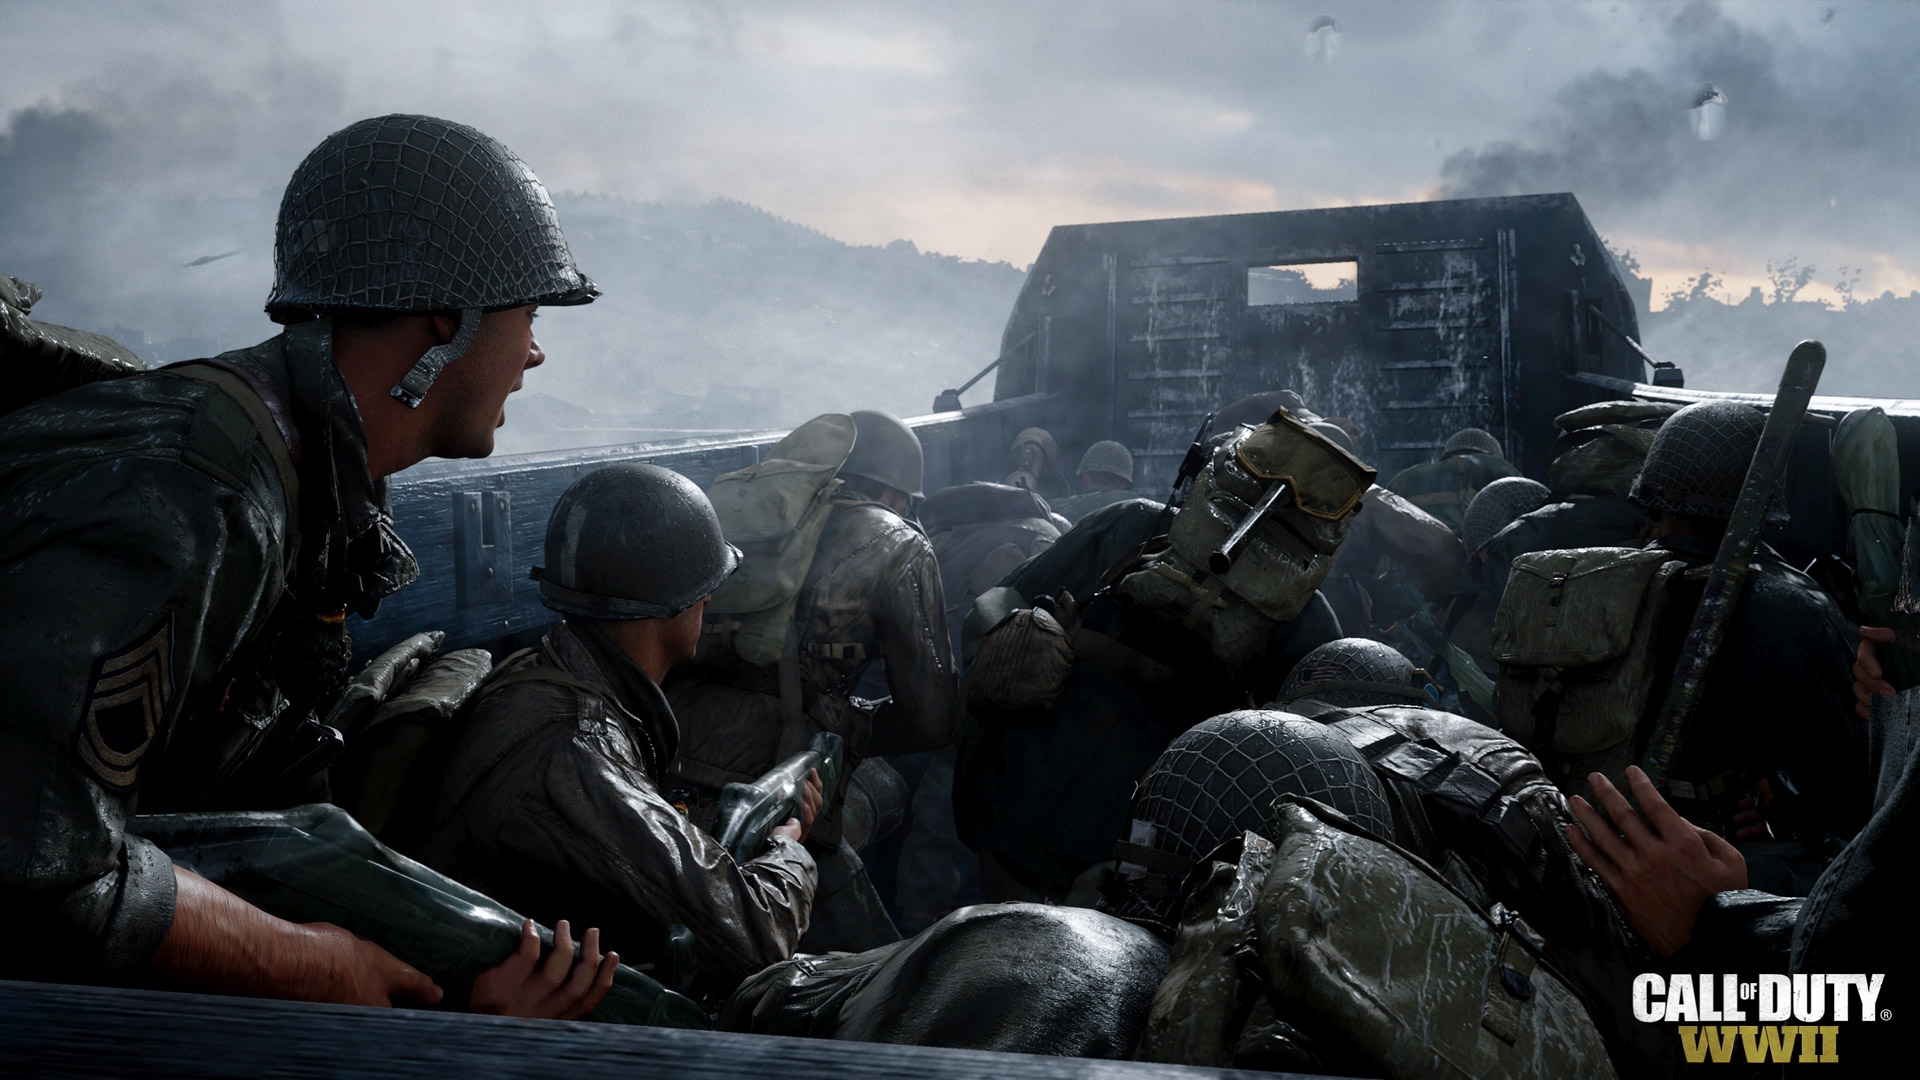 Call Of Duty Wwii Wallpaper In 1920x1080